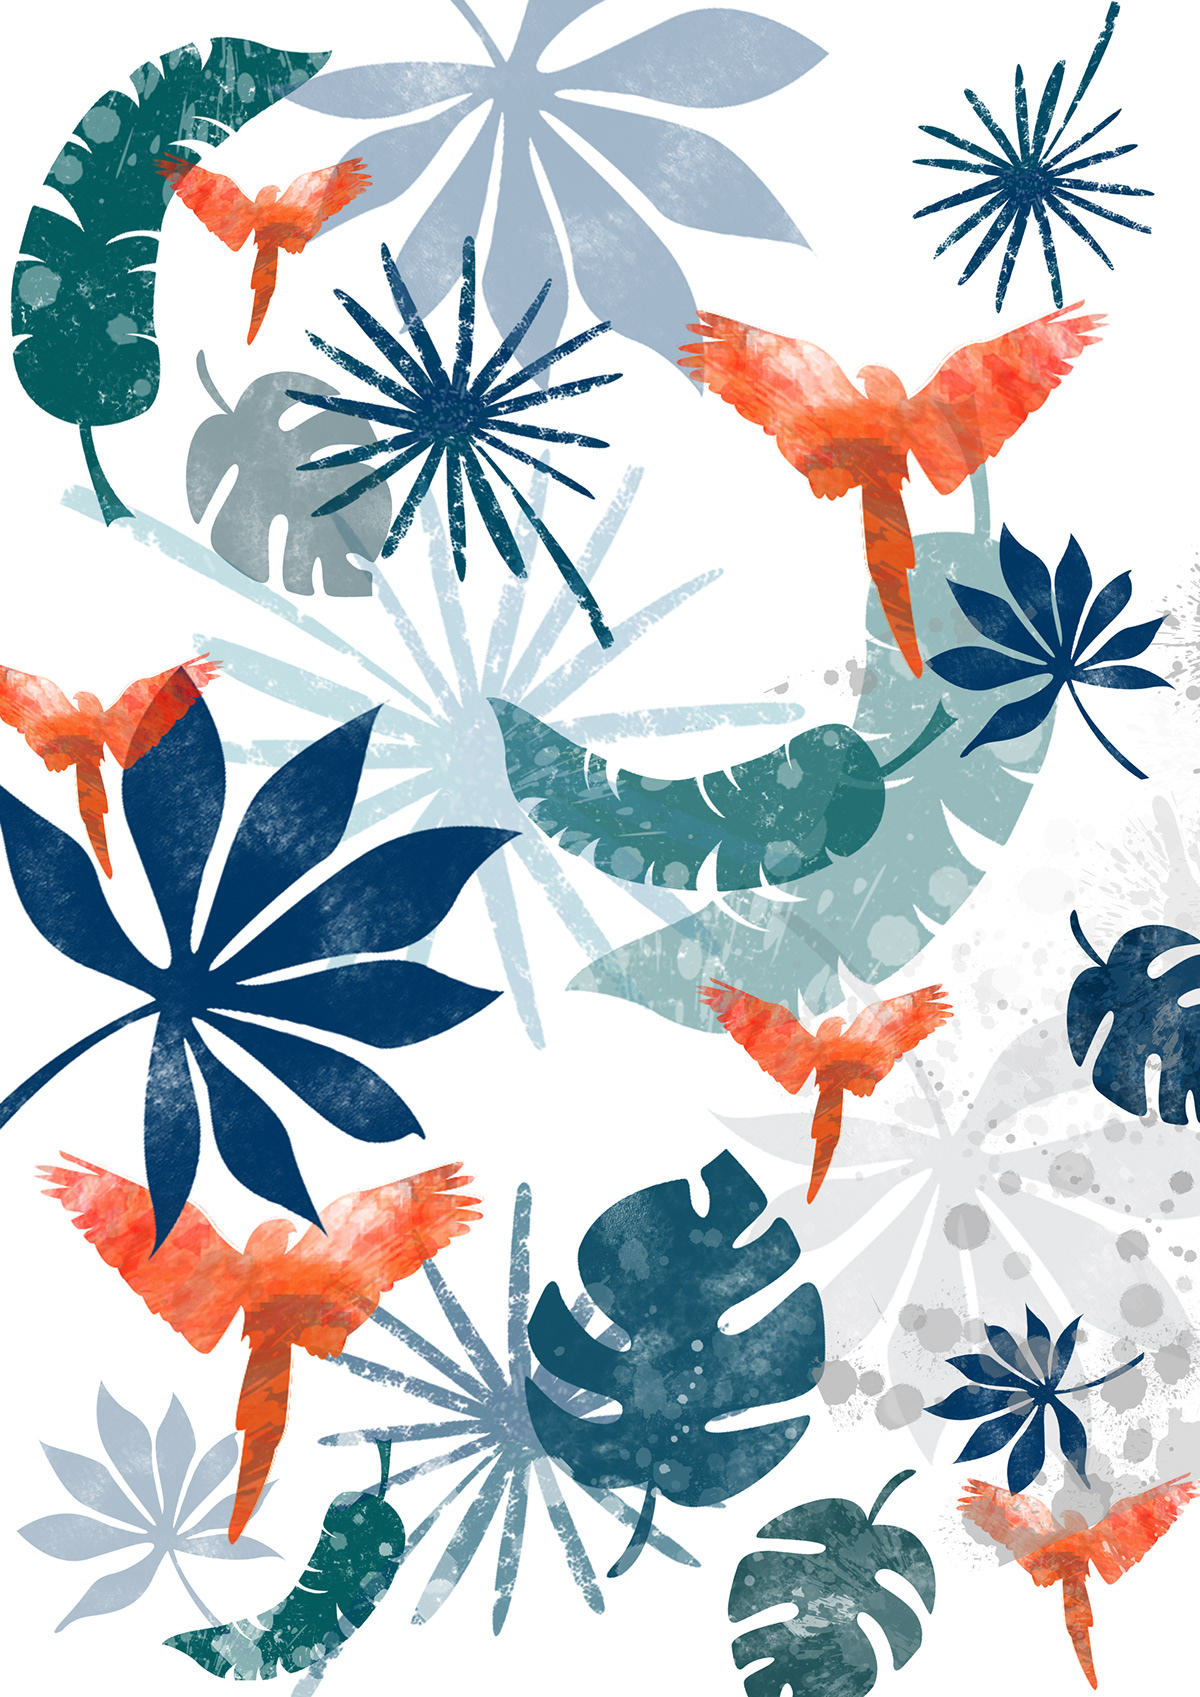 textile Wrapping paper pattern design  overall print